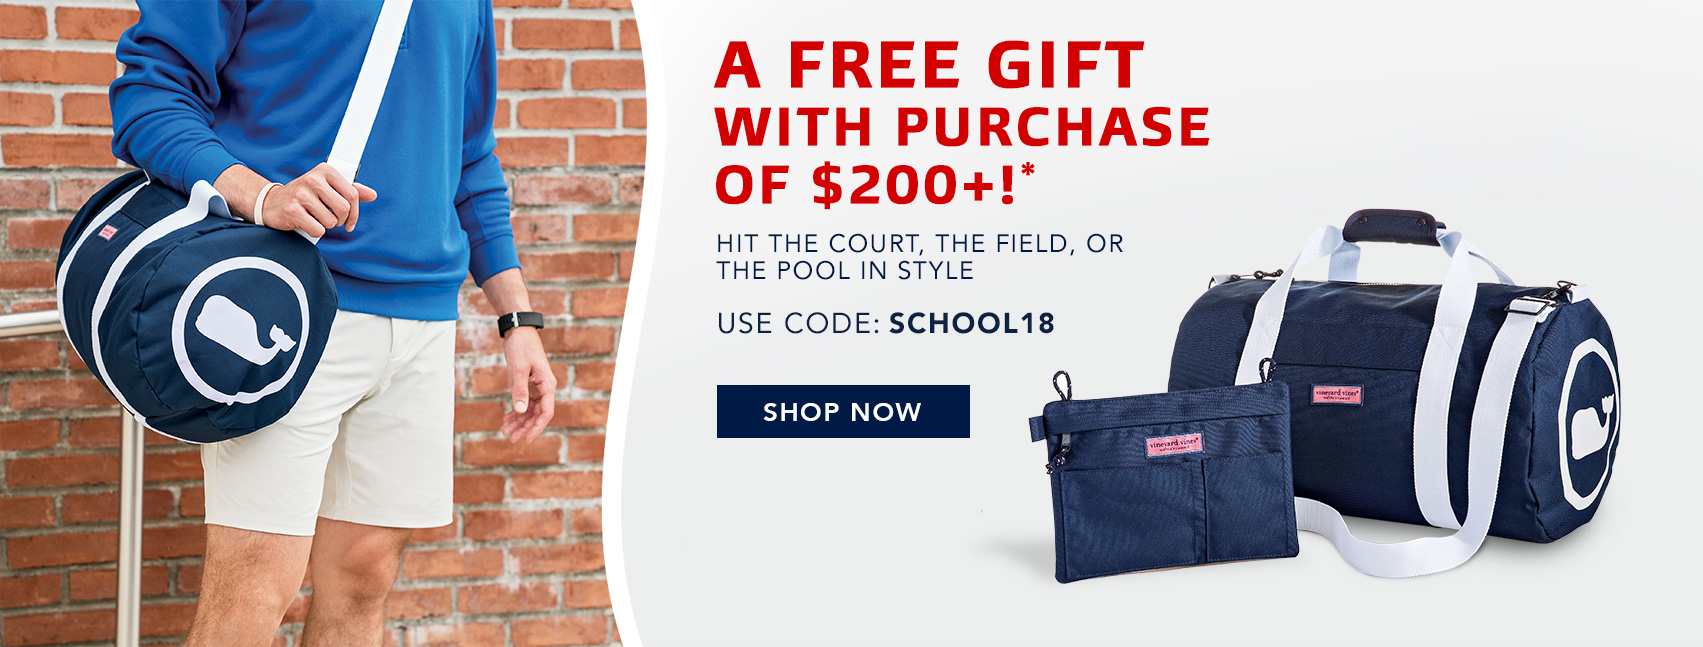 A Free Gift With Purchase* Hit the court, the field. or the pool in style. Use Code:SCHOOL18. SHOP NOW